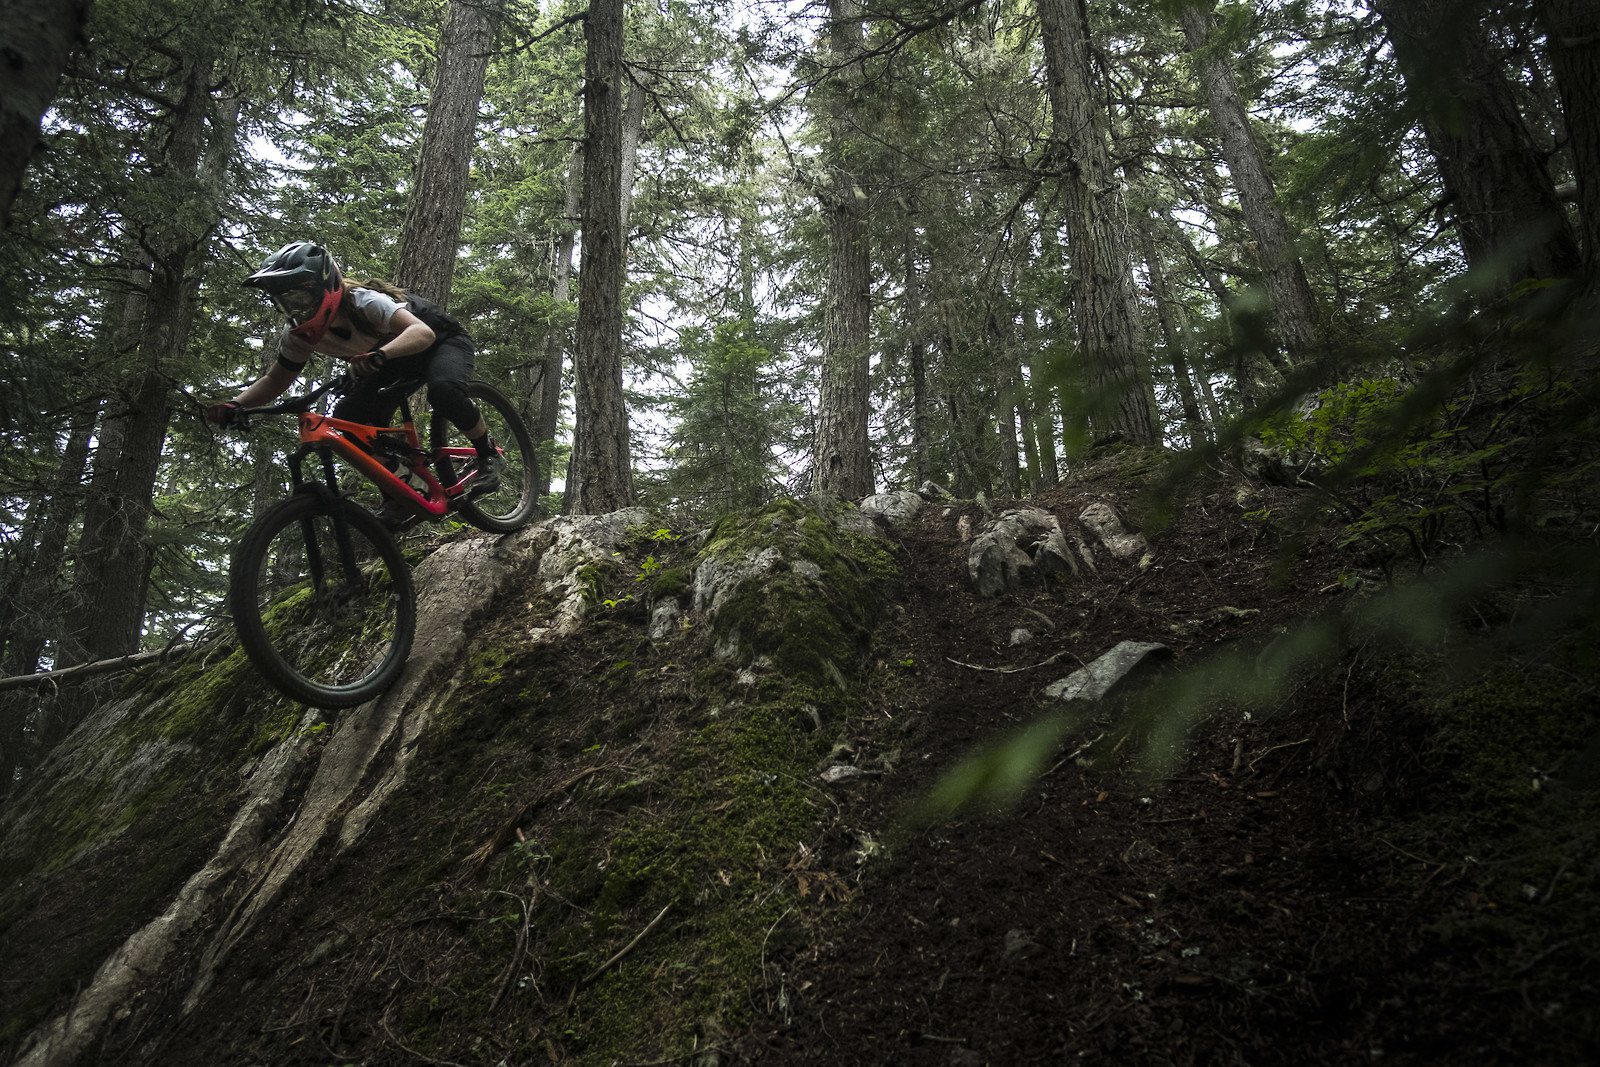 Lucy Mackie - Whistler  - Howie286 - Mountain Biking Pictures - Vital MTB